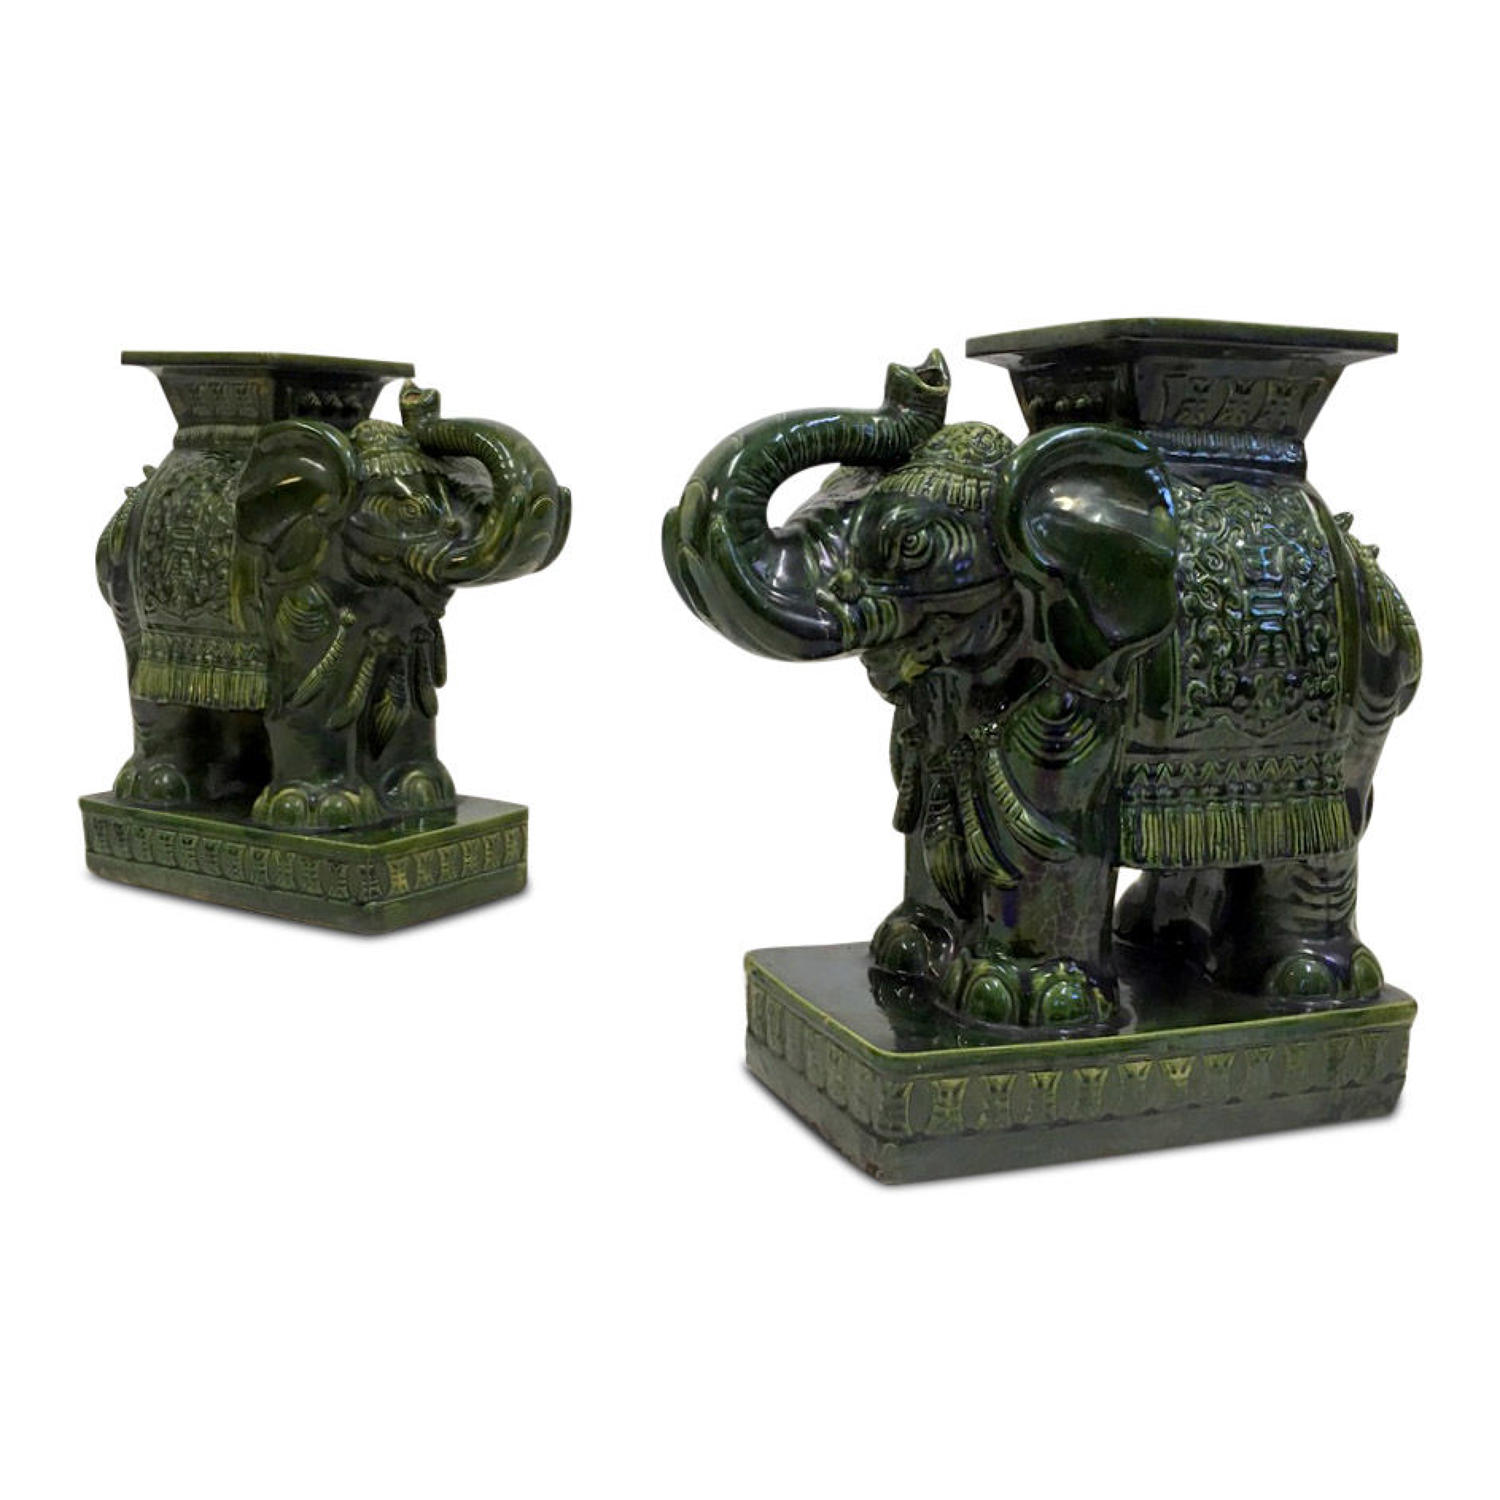 A pair of vintage green ceramic elephant stools or tables